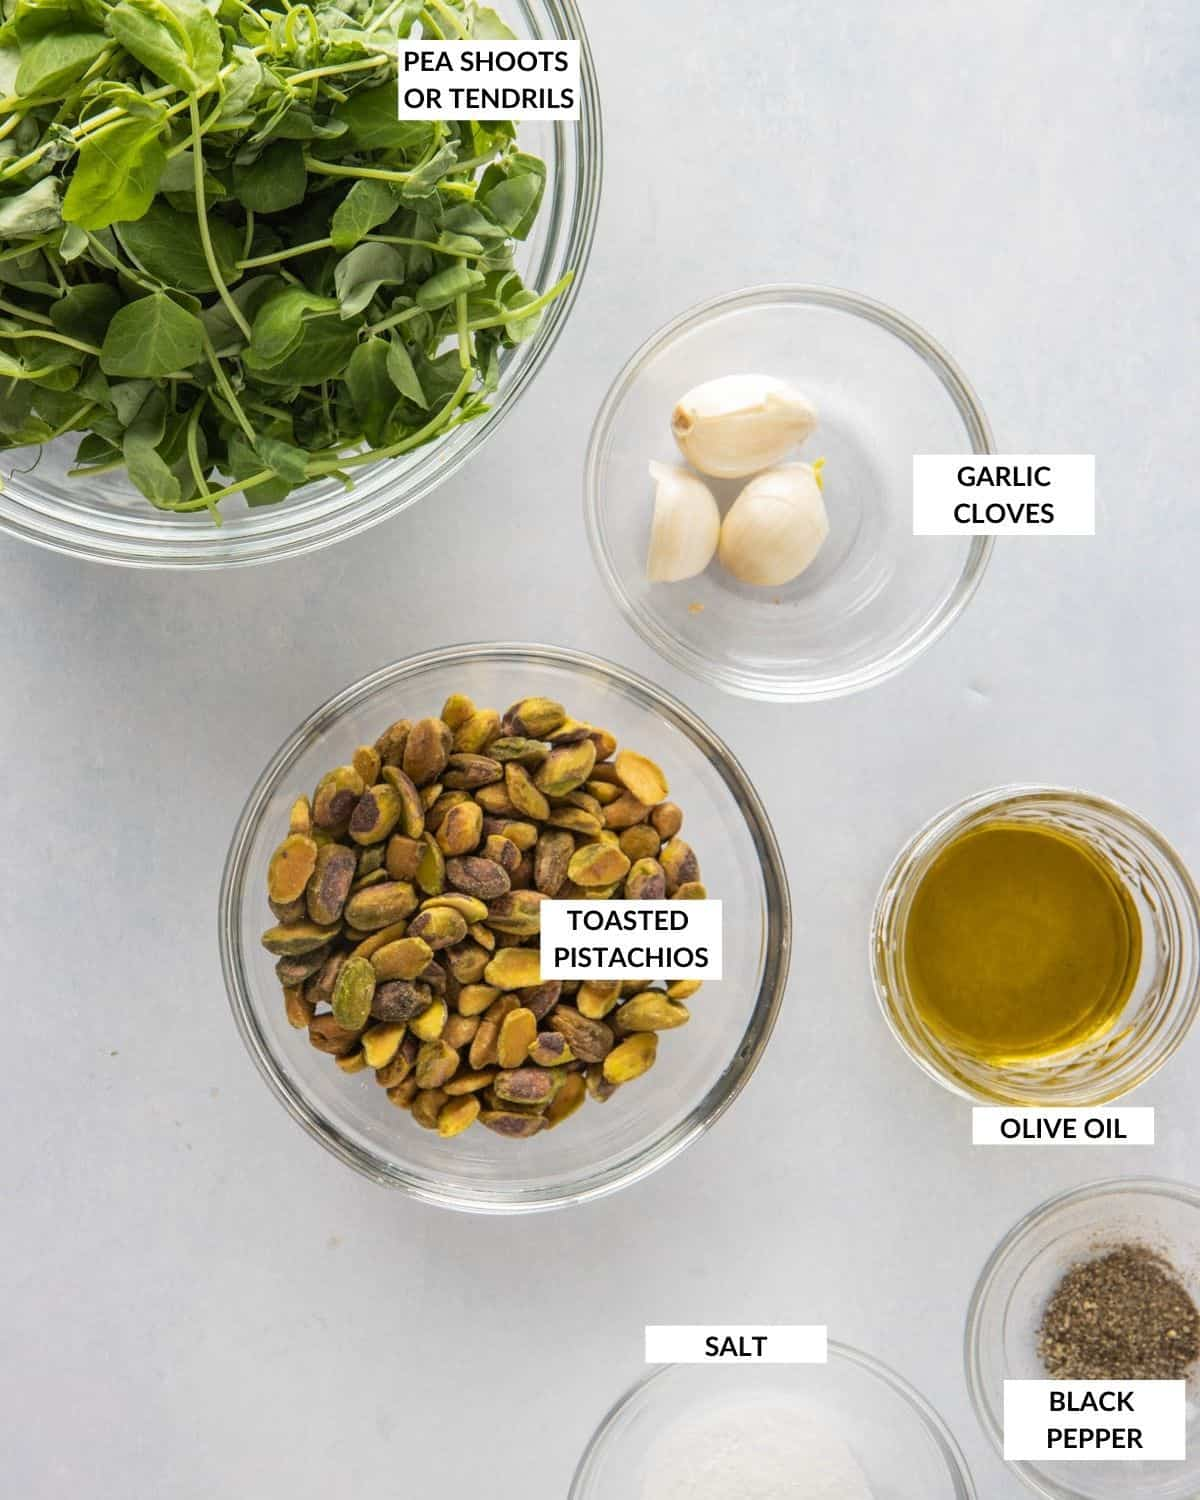 Labeled ingredient list - check recipe card for details!